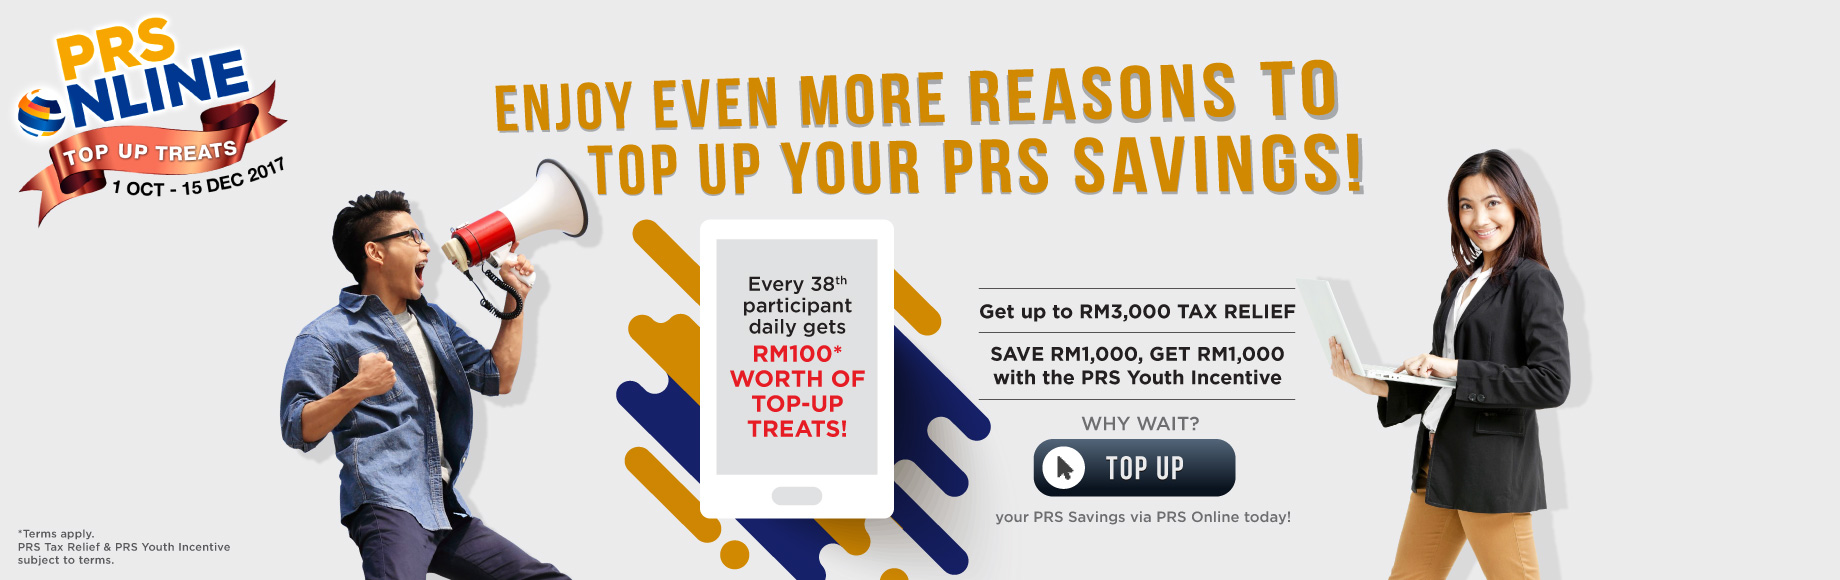 PRS-Remind3er-WebCover-all-banners_ppamy